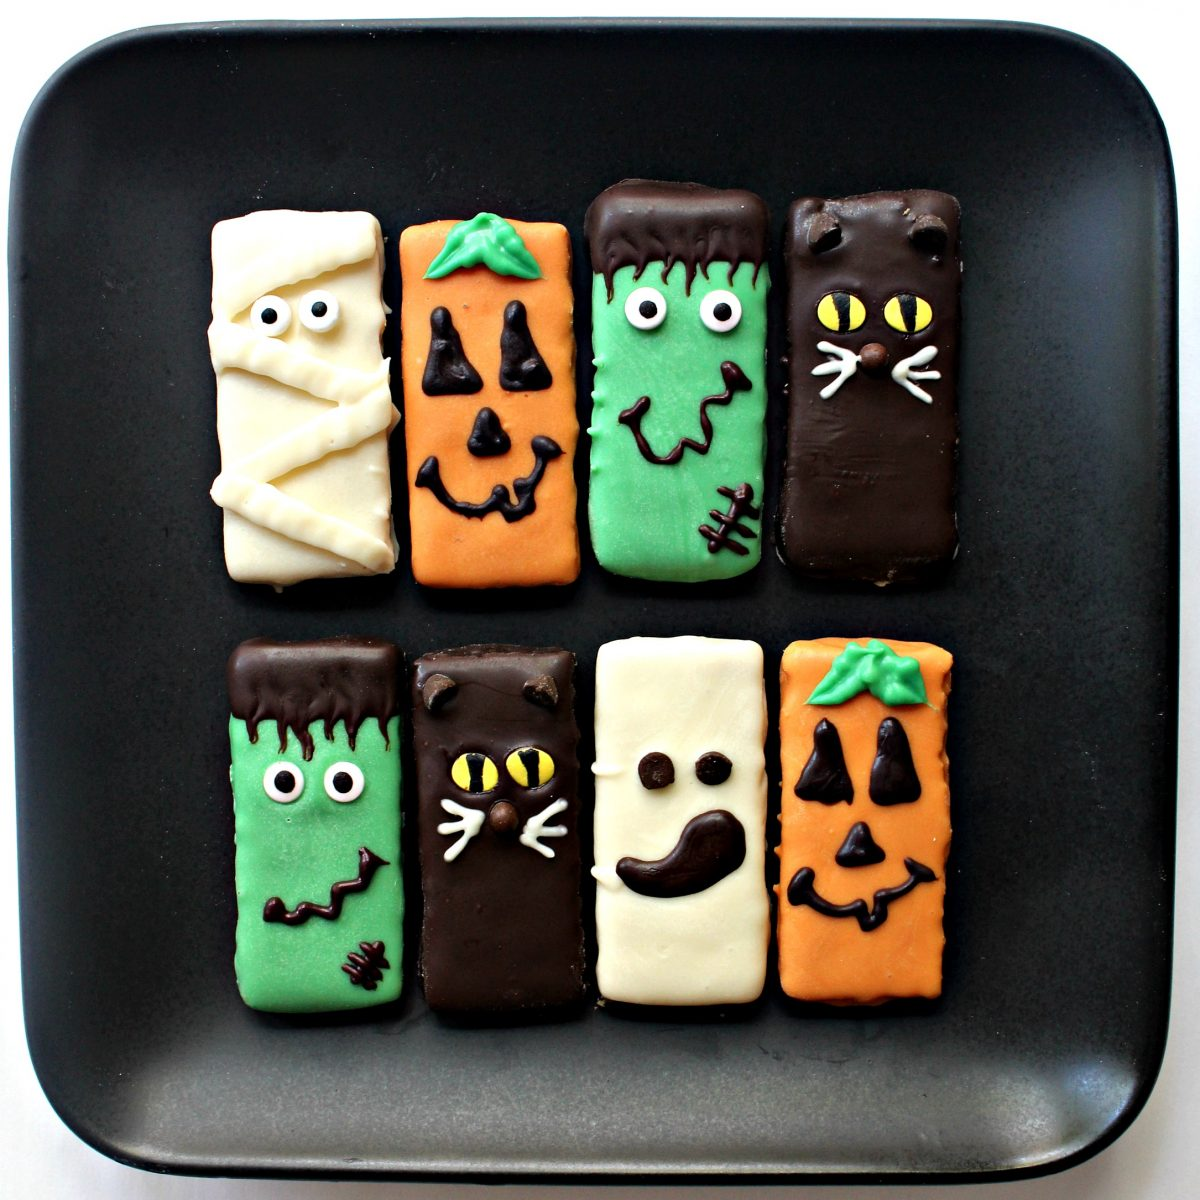 Chocolate coated graham Crackers decorated as Halloween characters on a black plate.